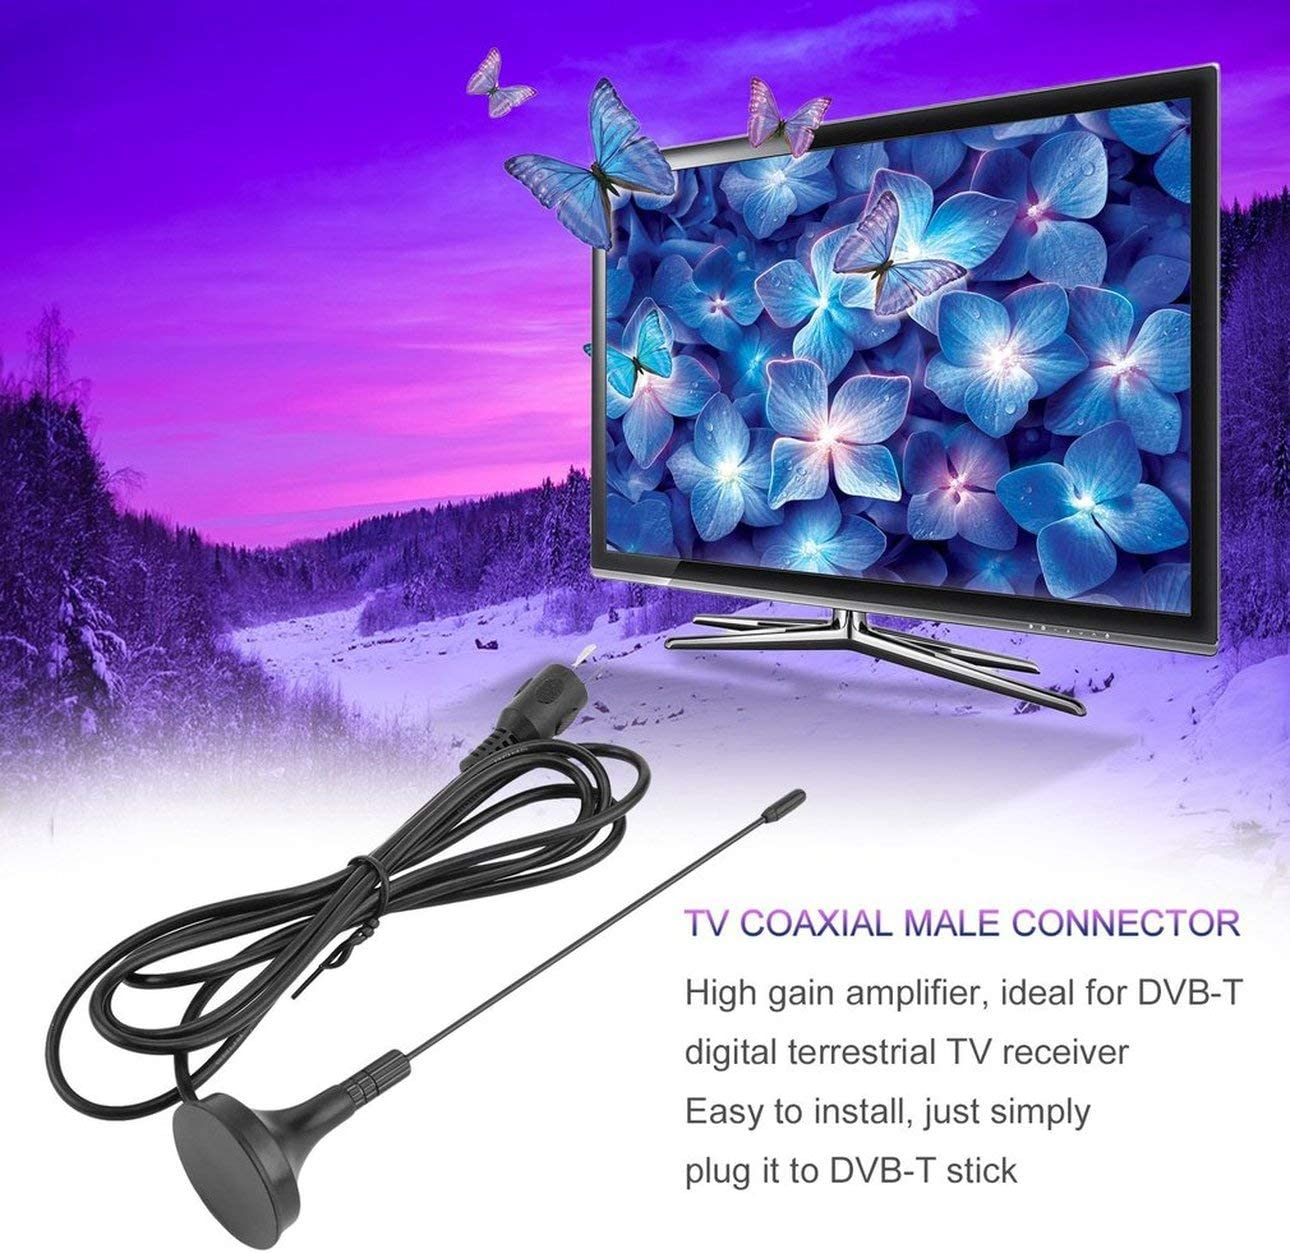 Liobaba Portable 5dBi Digital DVB-T TV Free-View HDTV Aerial High Gain Amplifiers TV Indoor HDTV Strong Signal Boosters